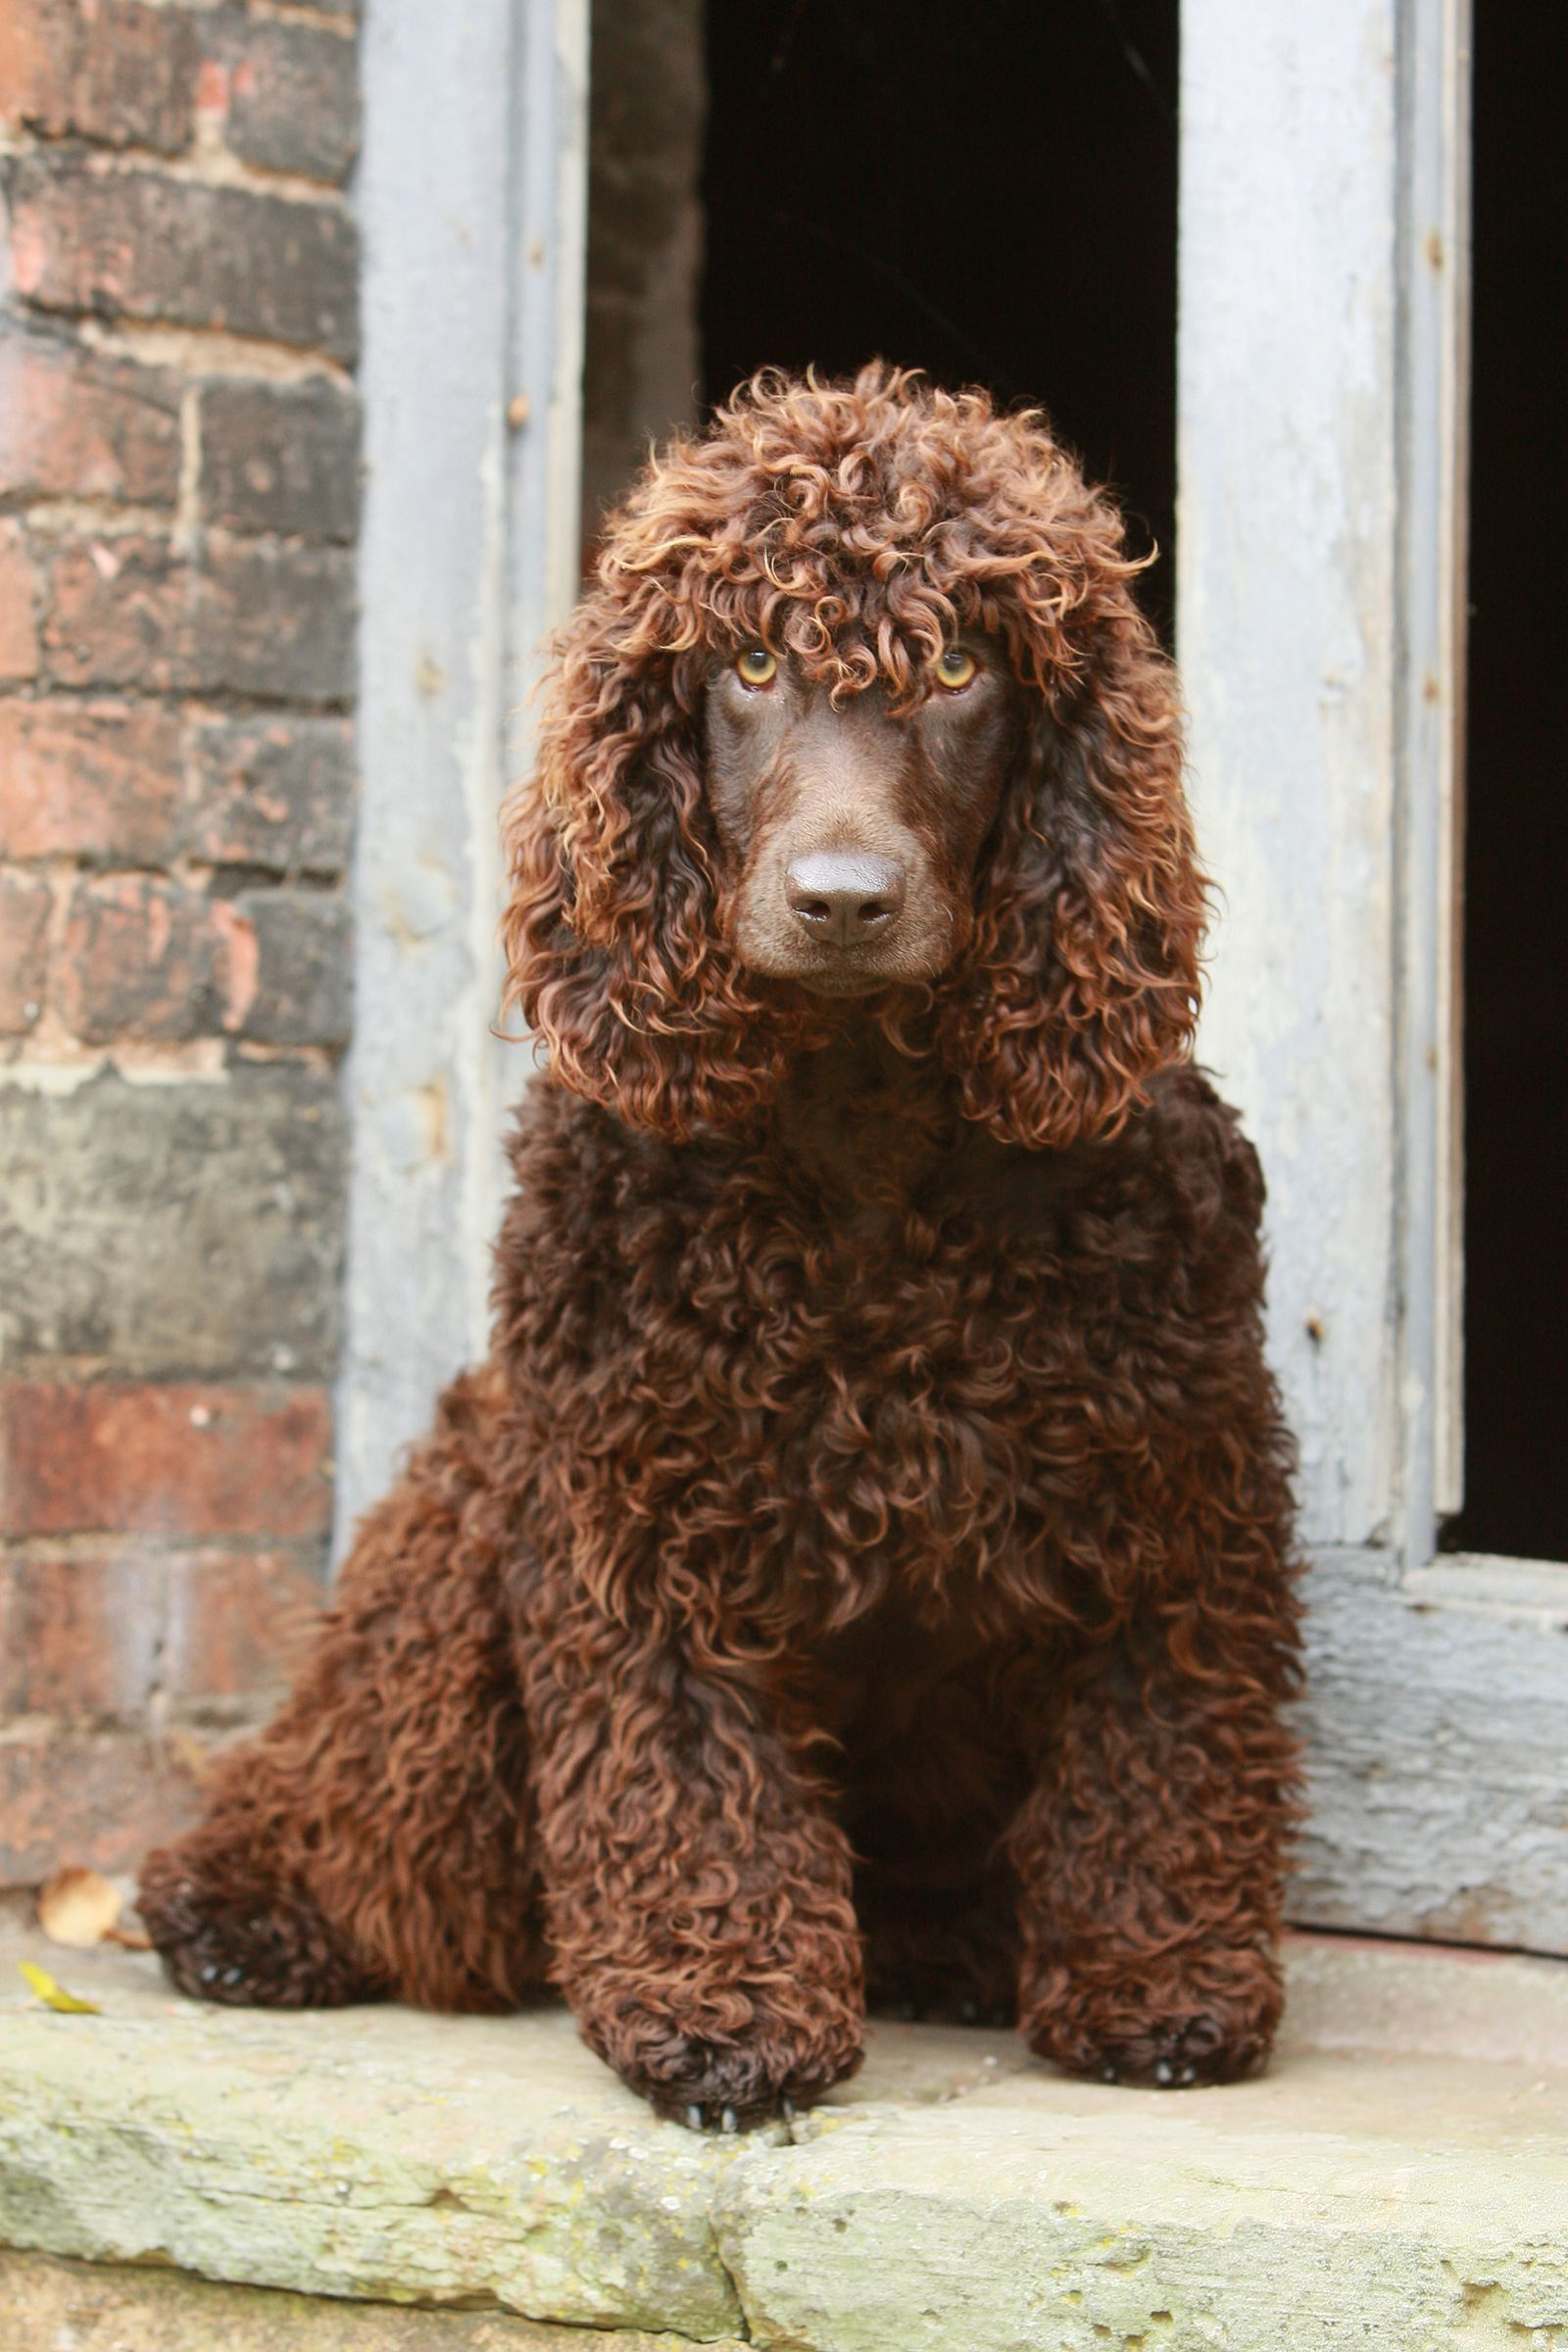 The 20 Cutest Dog Breeds That Don't Shed (With images